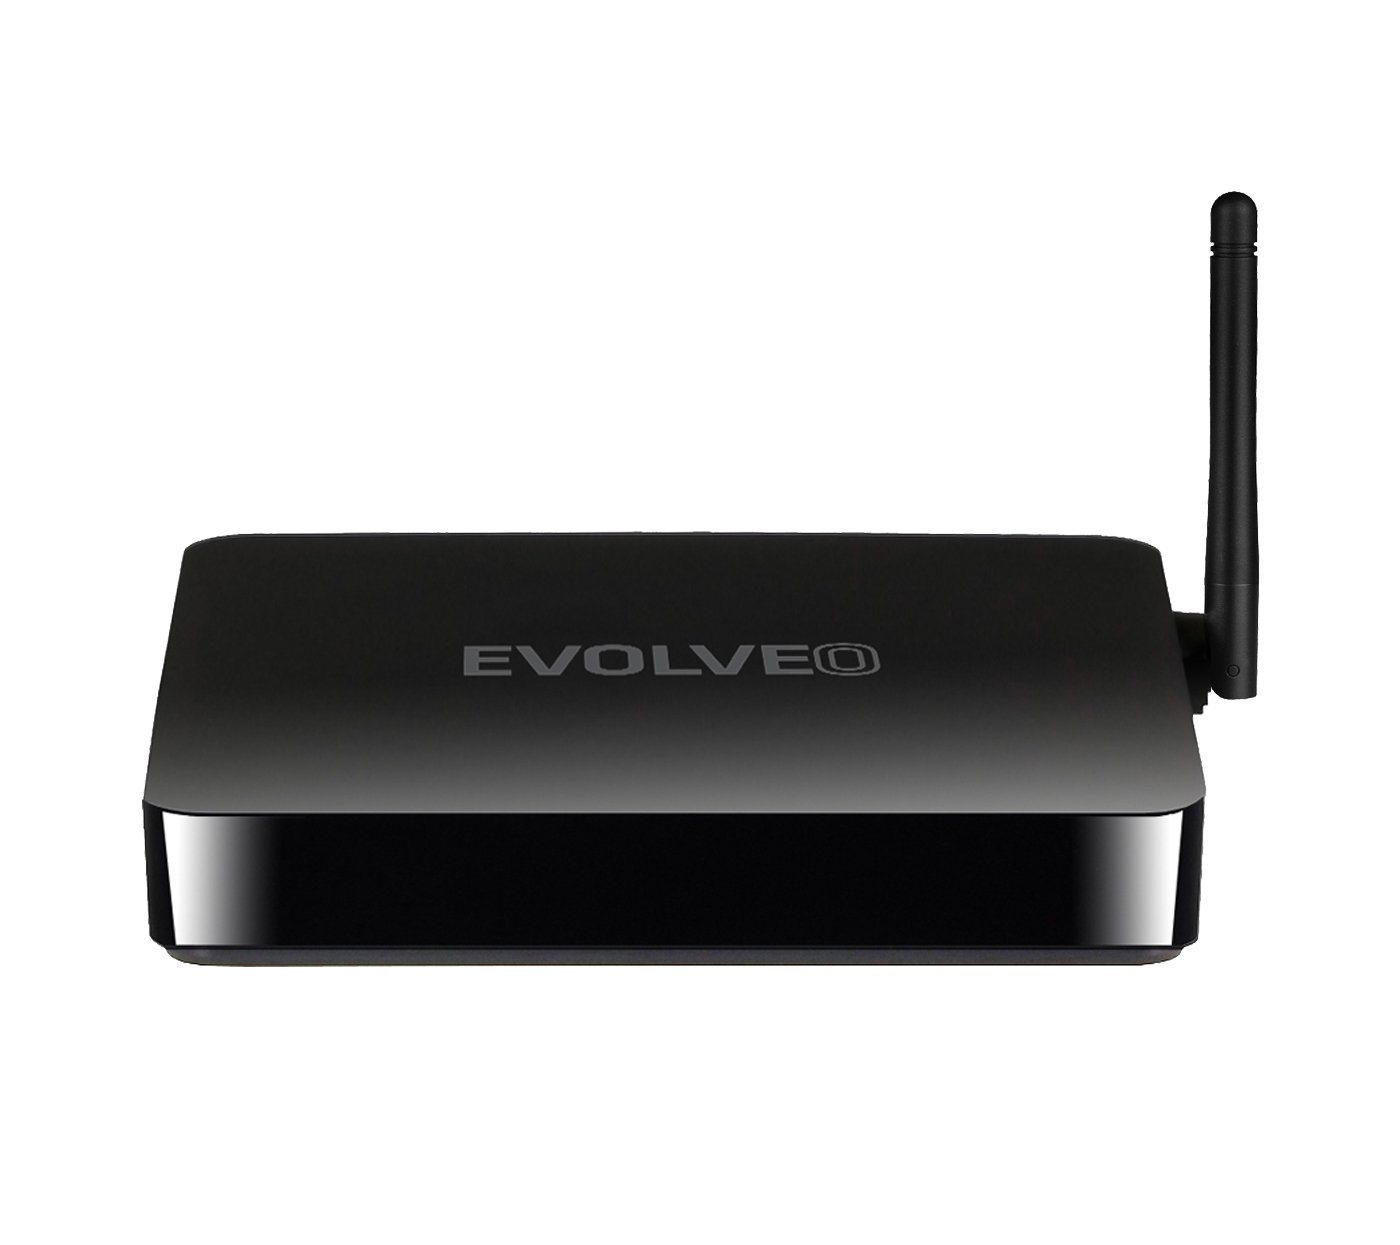 EVOLVEO MultiMedia Box M8, Octa Core multimediální centrum]